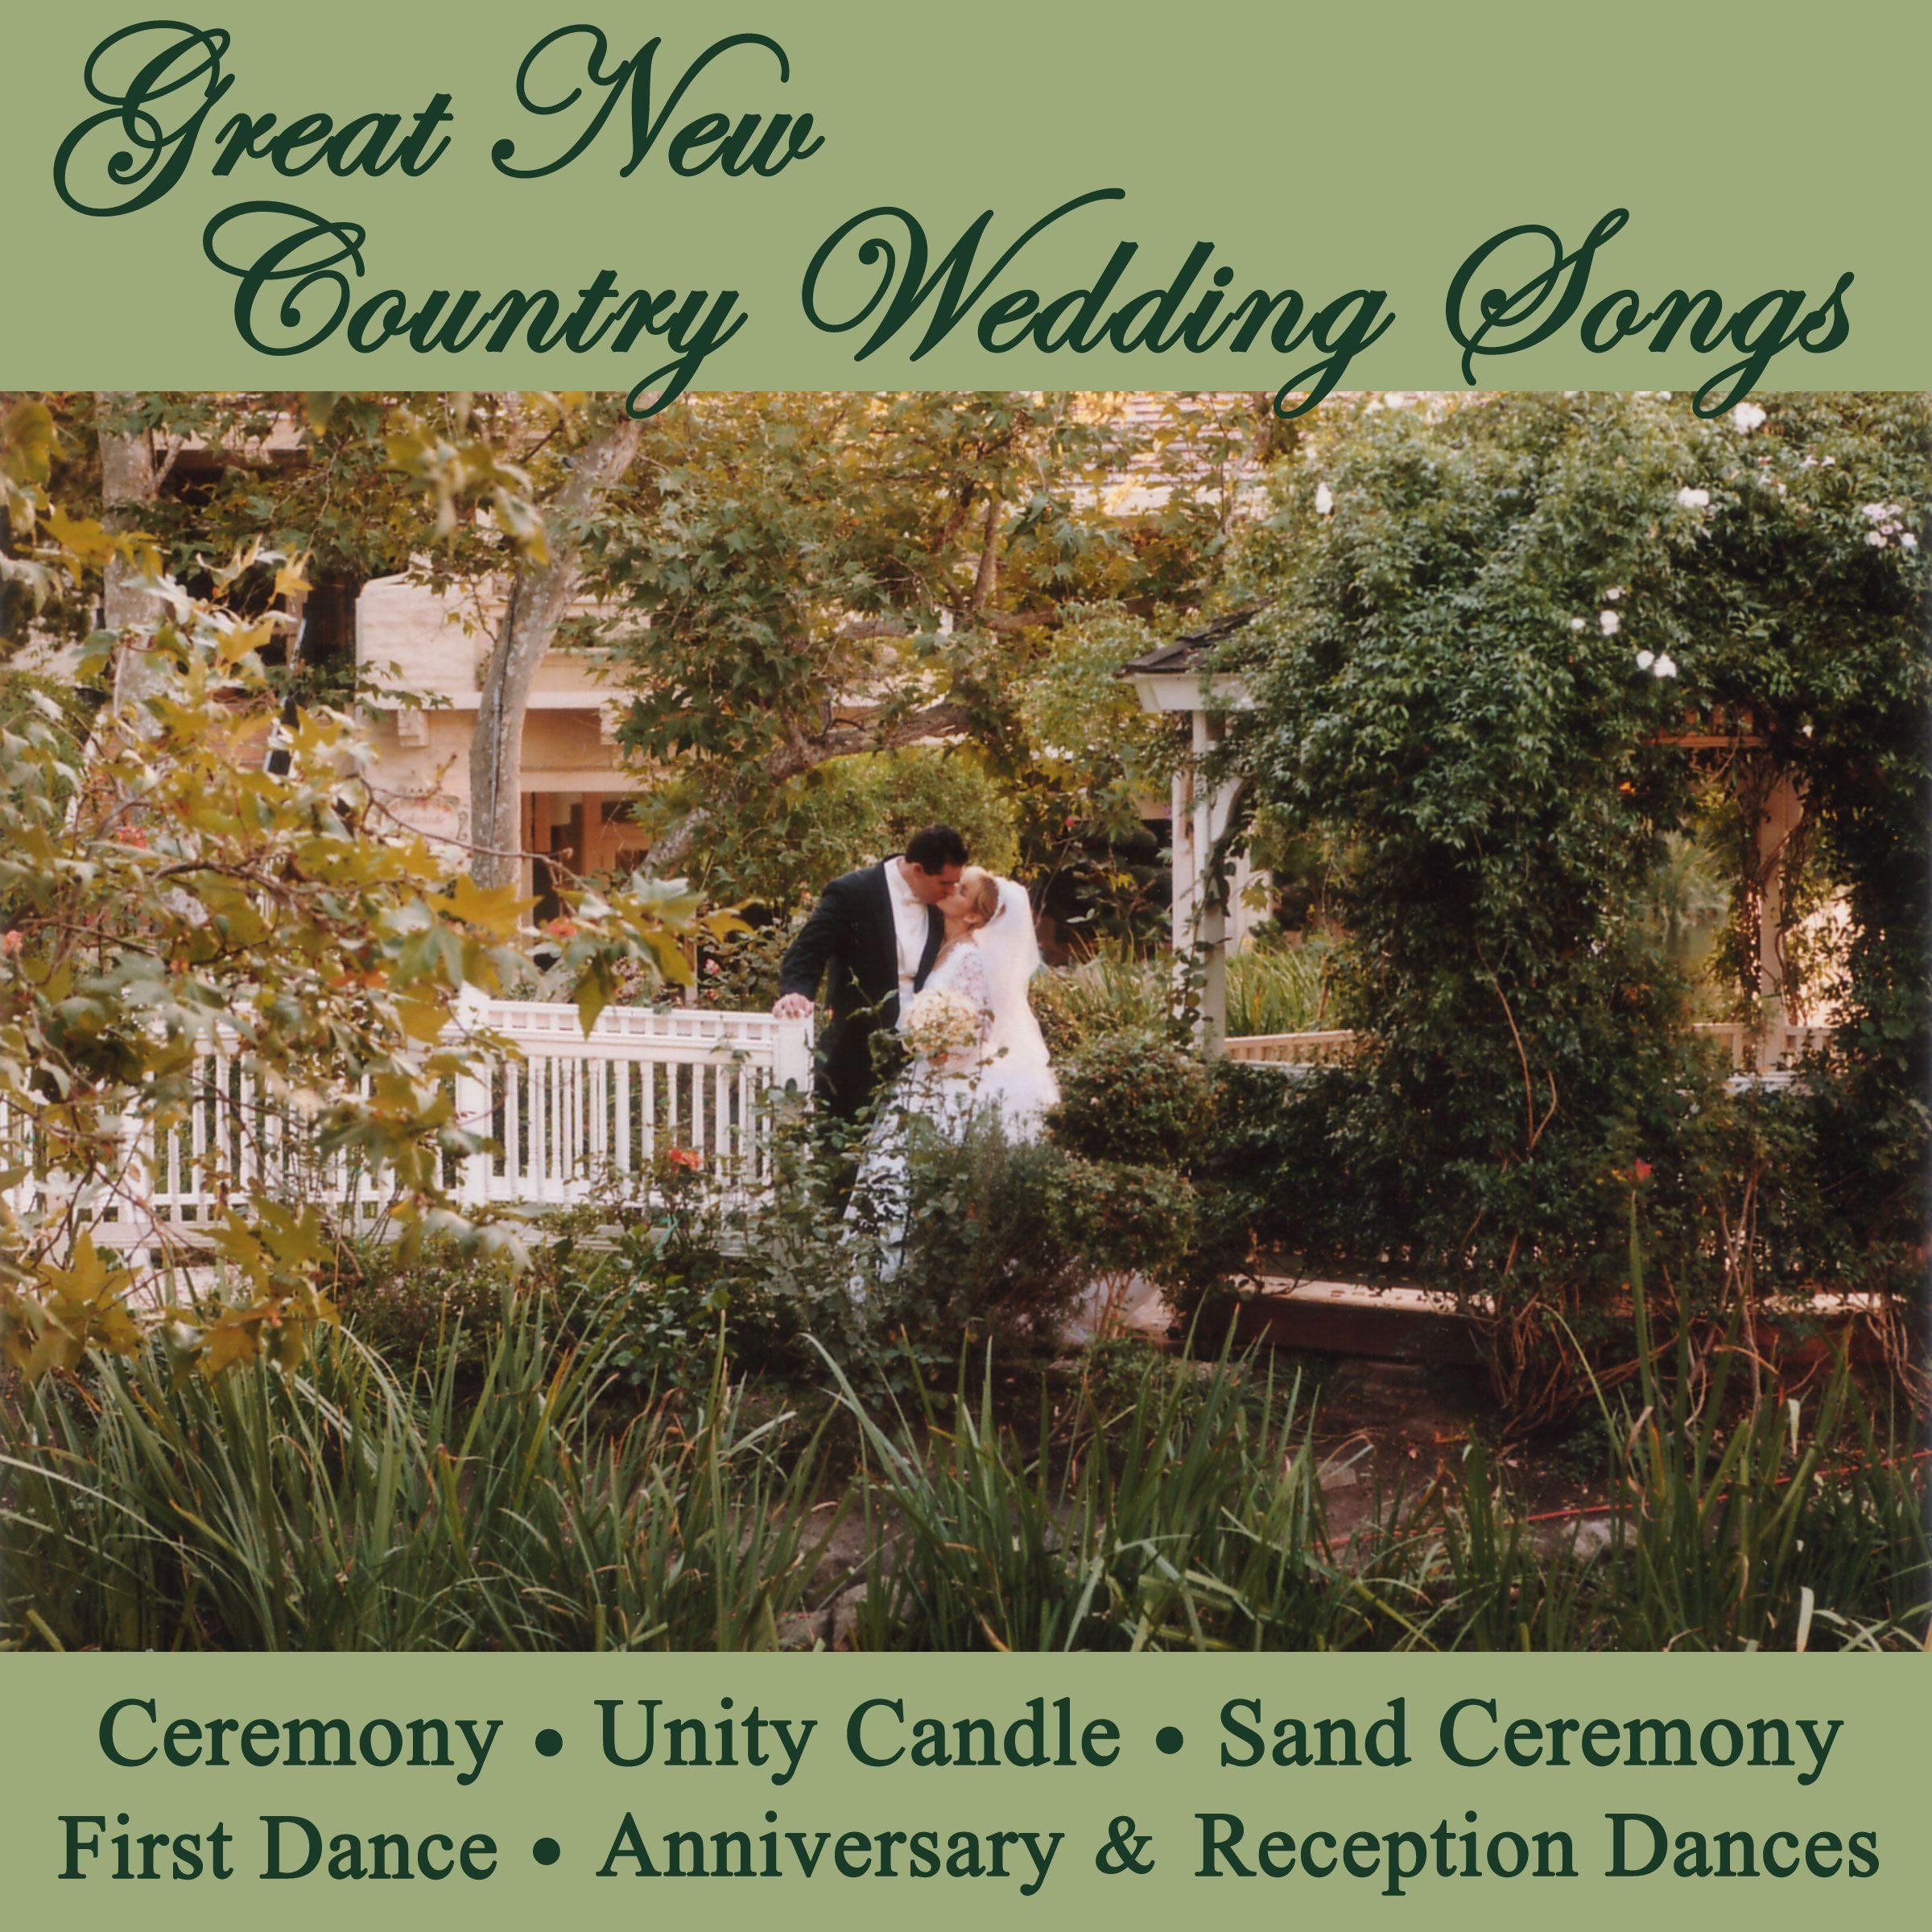 Country Love Songs For Weddings: Great New Country Wedding Songs